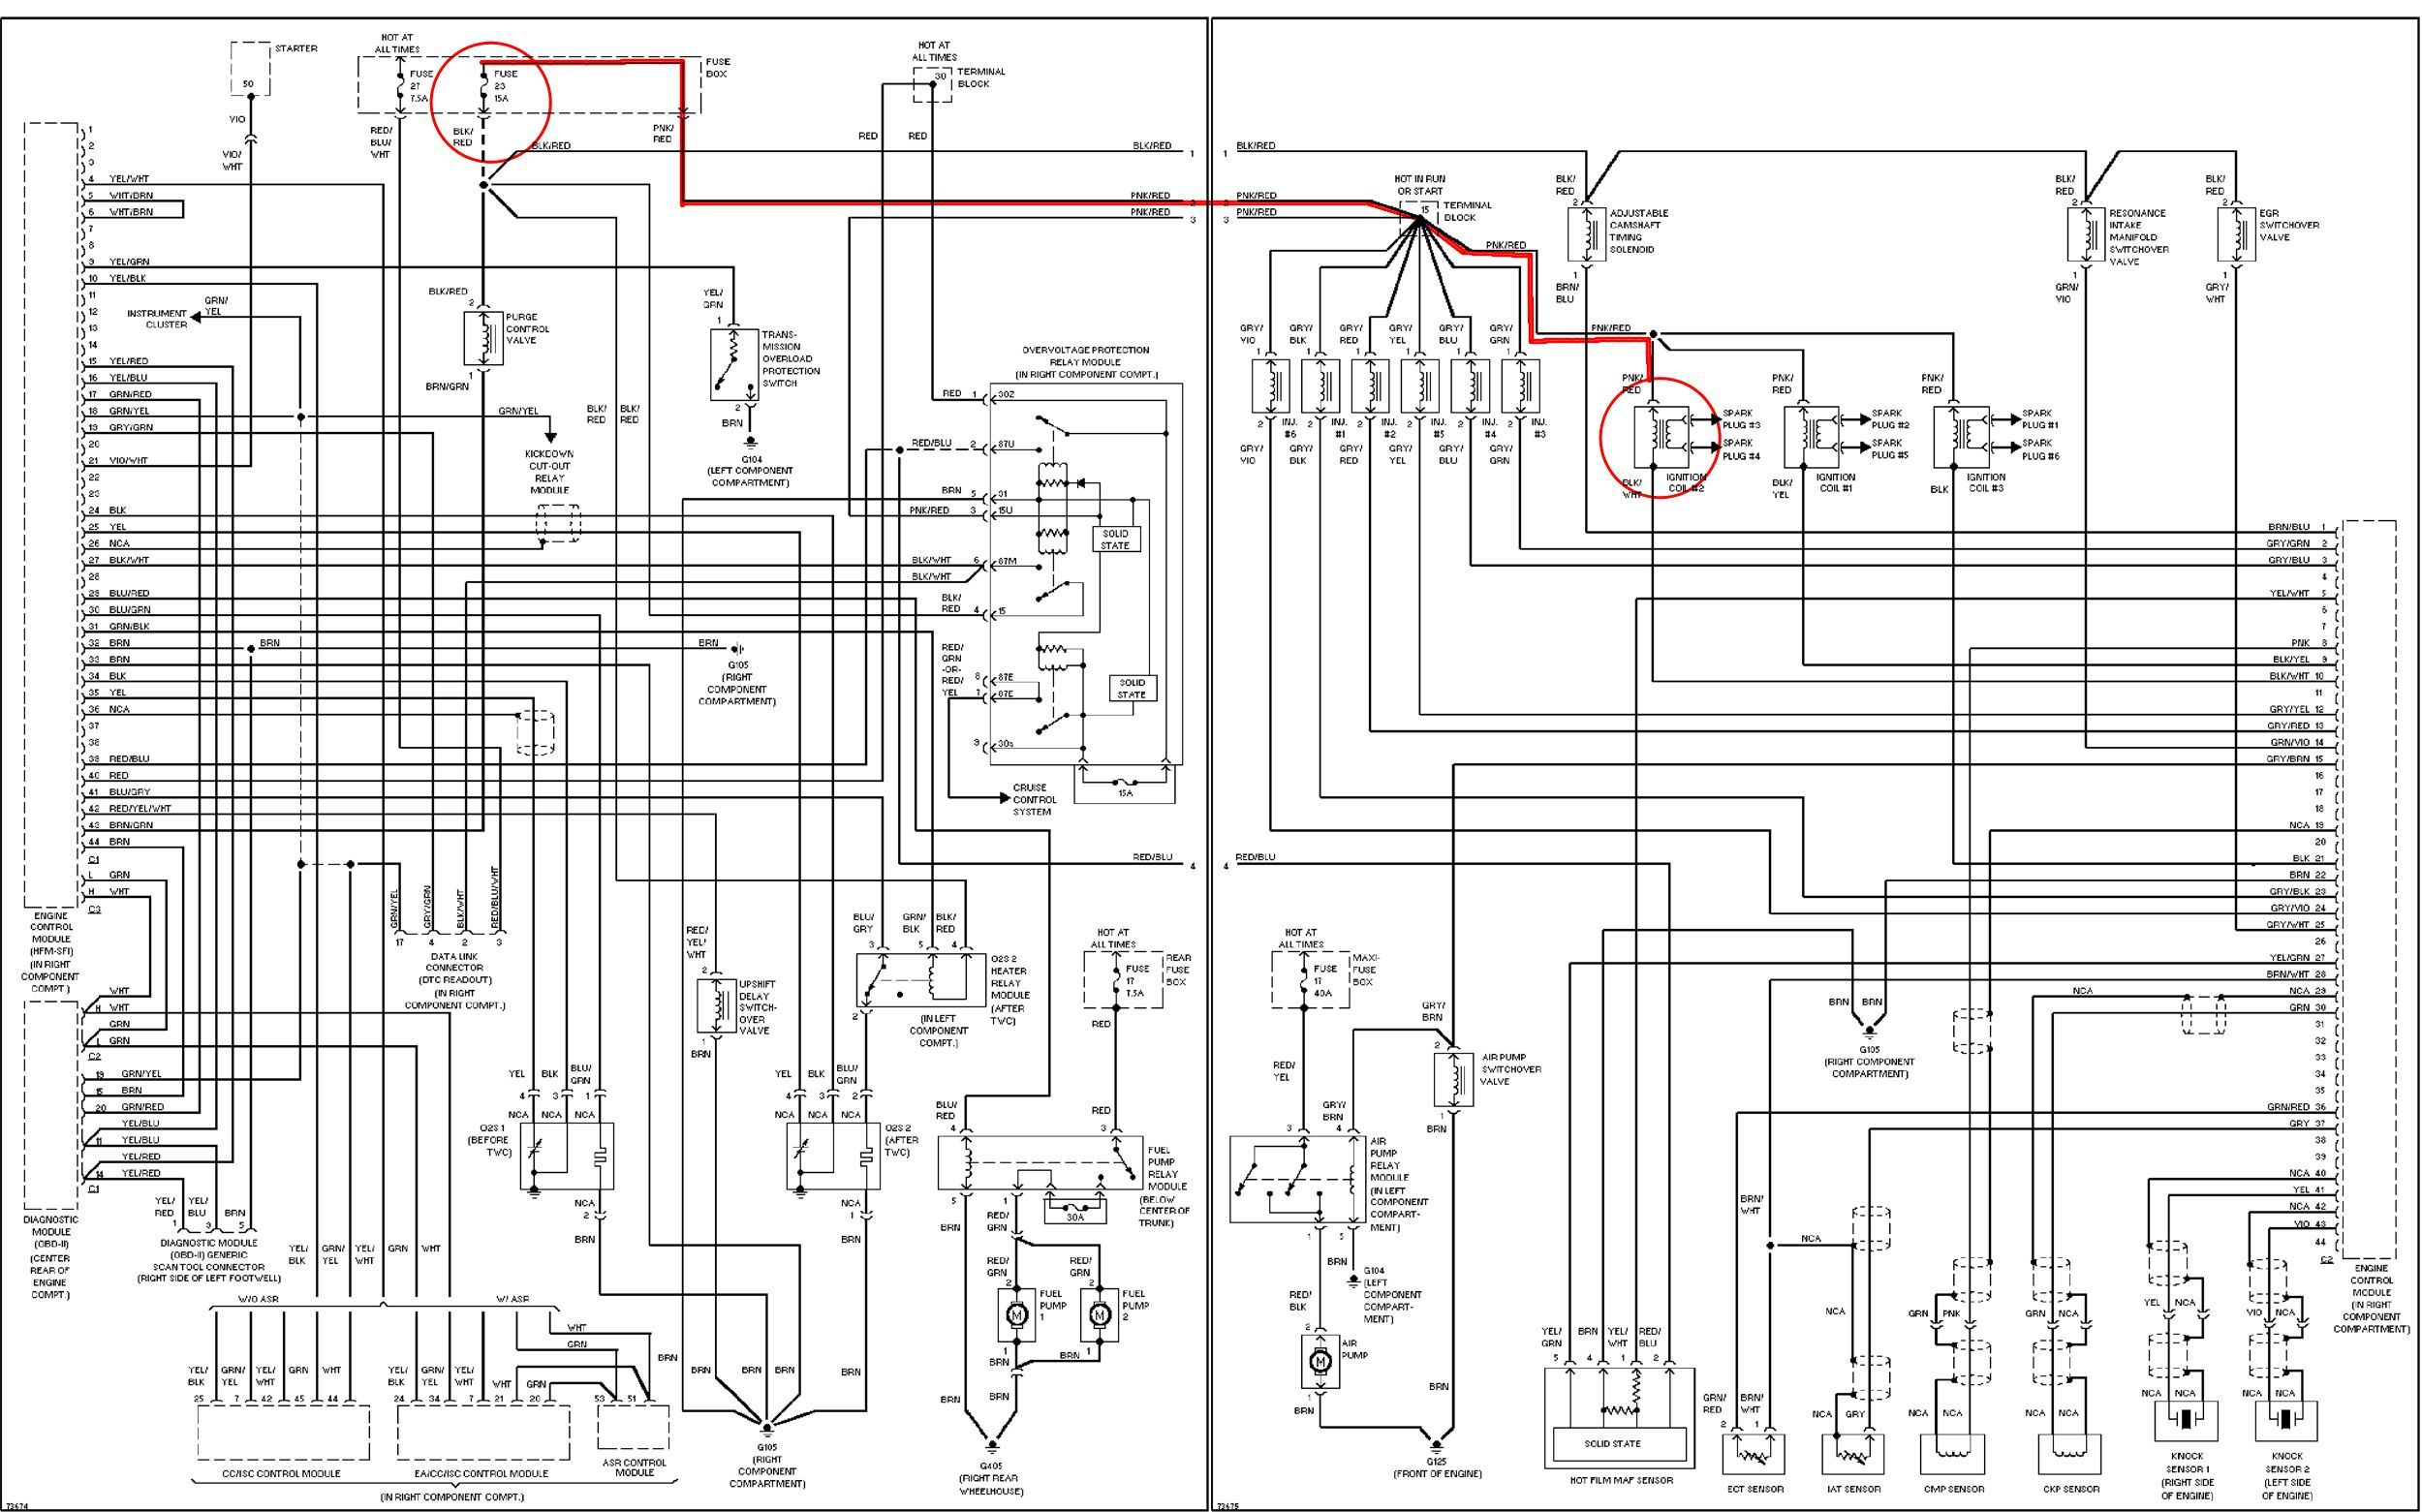 medium resolution of free mercedes benz wiring diagrams wiring library mercedes benz ml320 engine diagram mercedes benz w123 wiring diagram